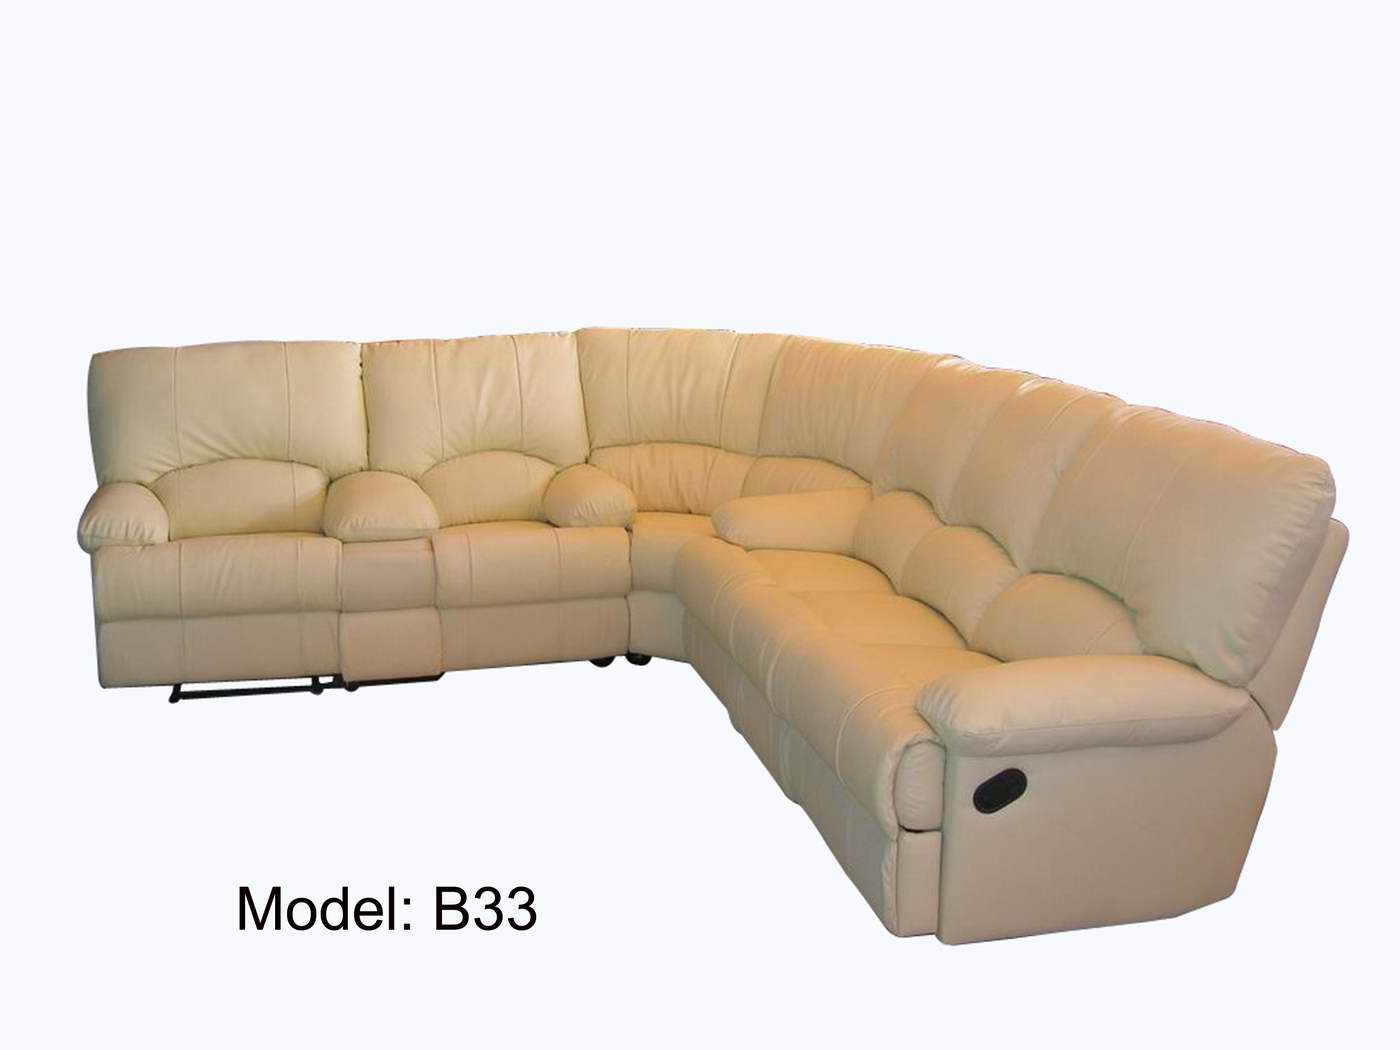 Leather Sectional Couches in cream theme for inspiring furniture ideas